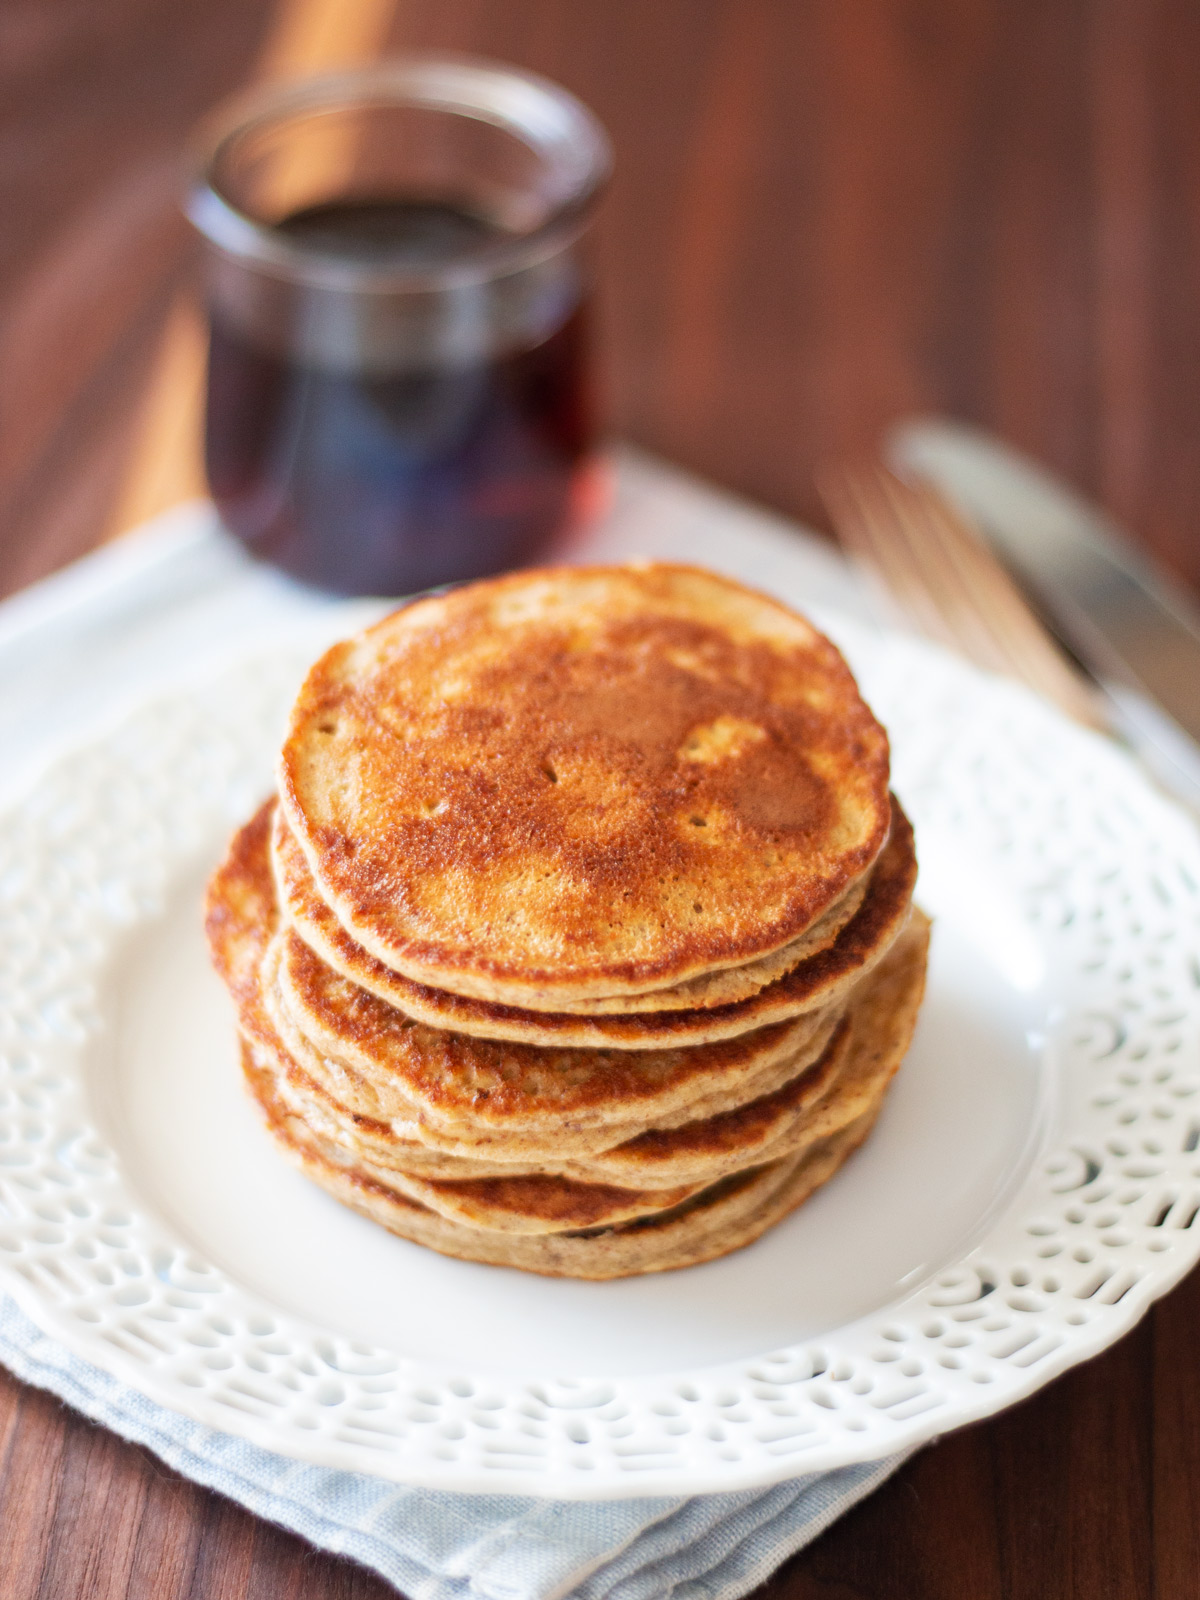 Easy Apple Banana Pancakes - These tasty pancakes are a great way to start any morning.